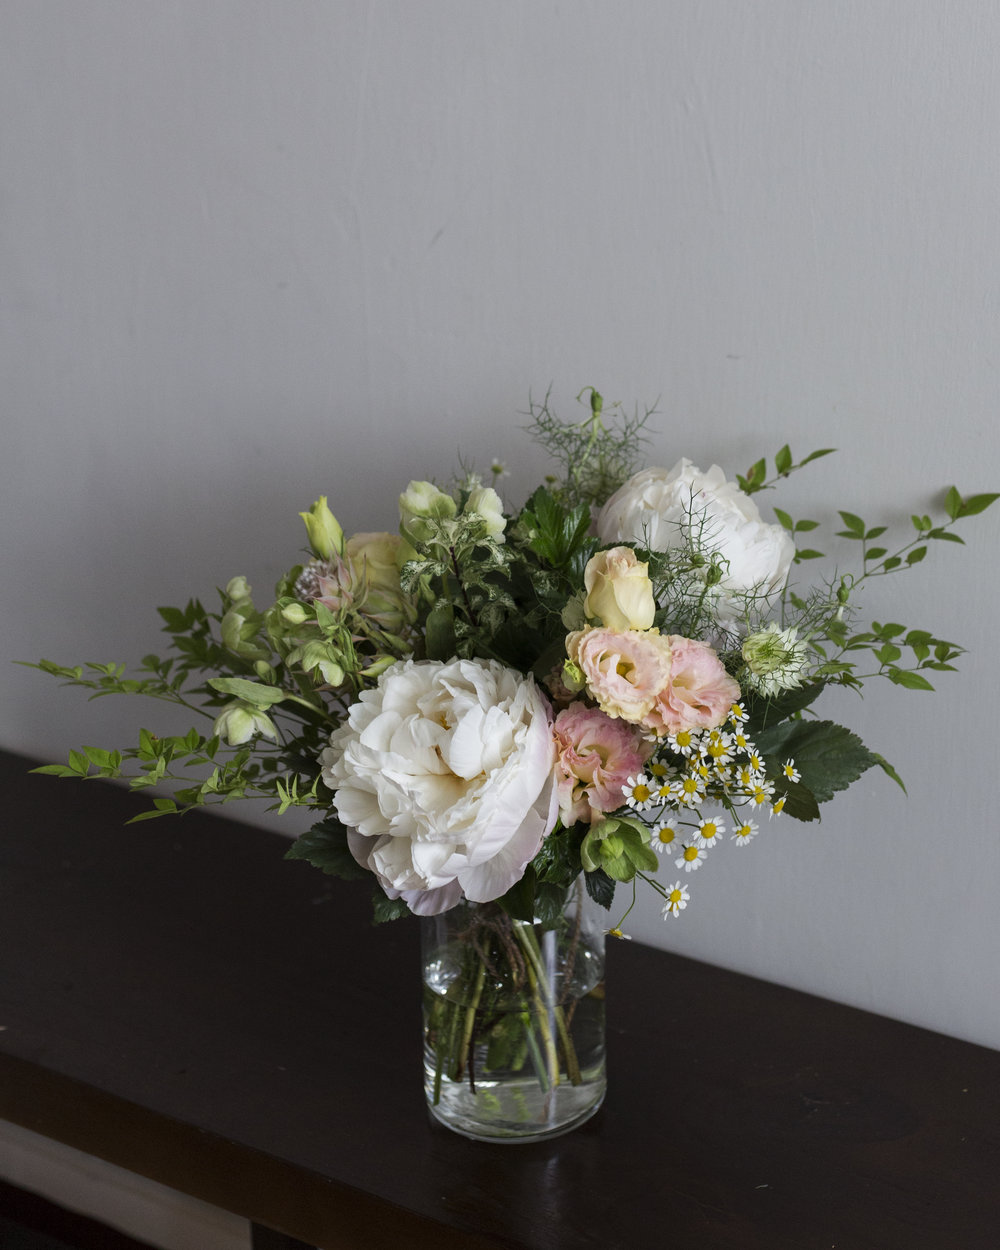 Simple Plain Vase (Medium) HK$1,080